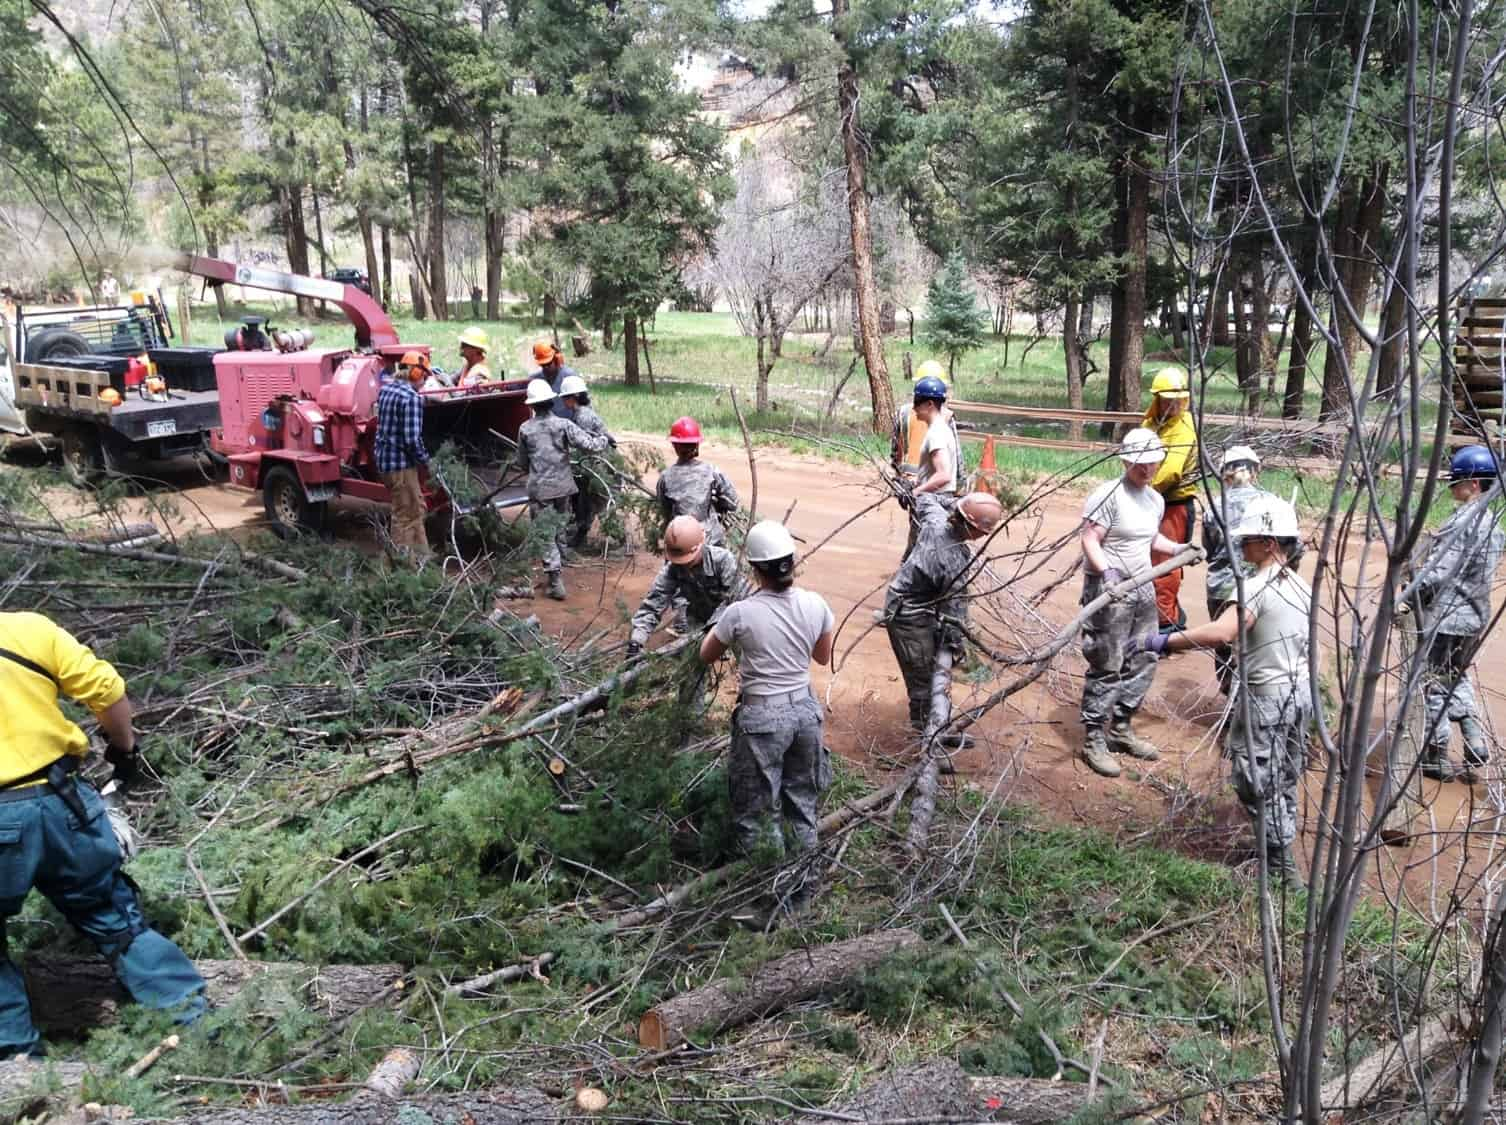 People loading trees into a chipper as part of the outreach and home wildfire risk assessment happening in Palmer Lake, CO